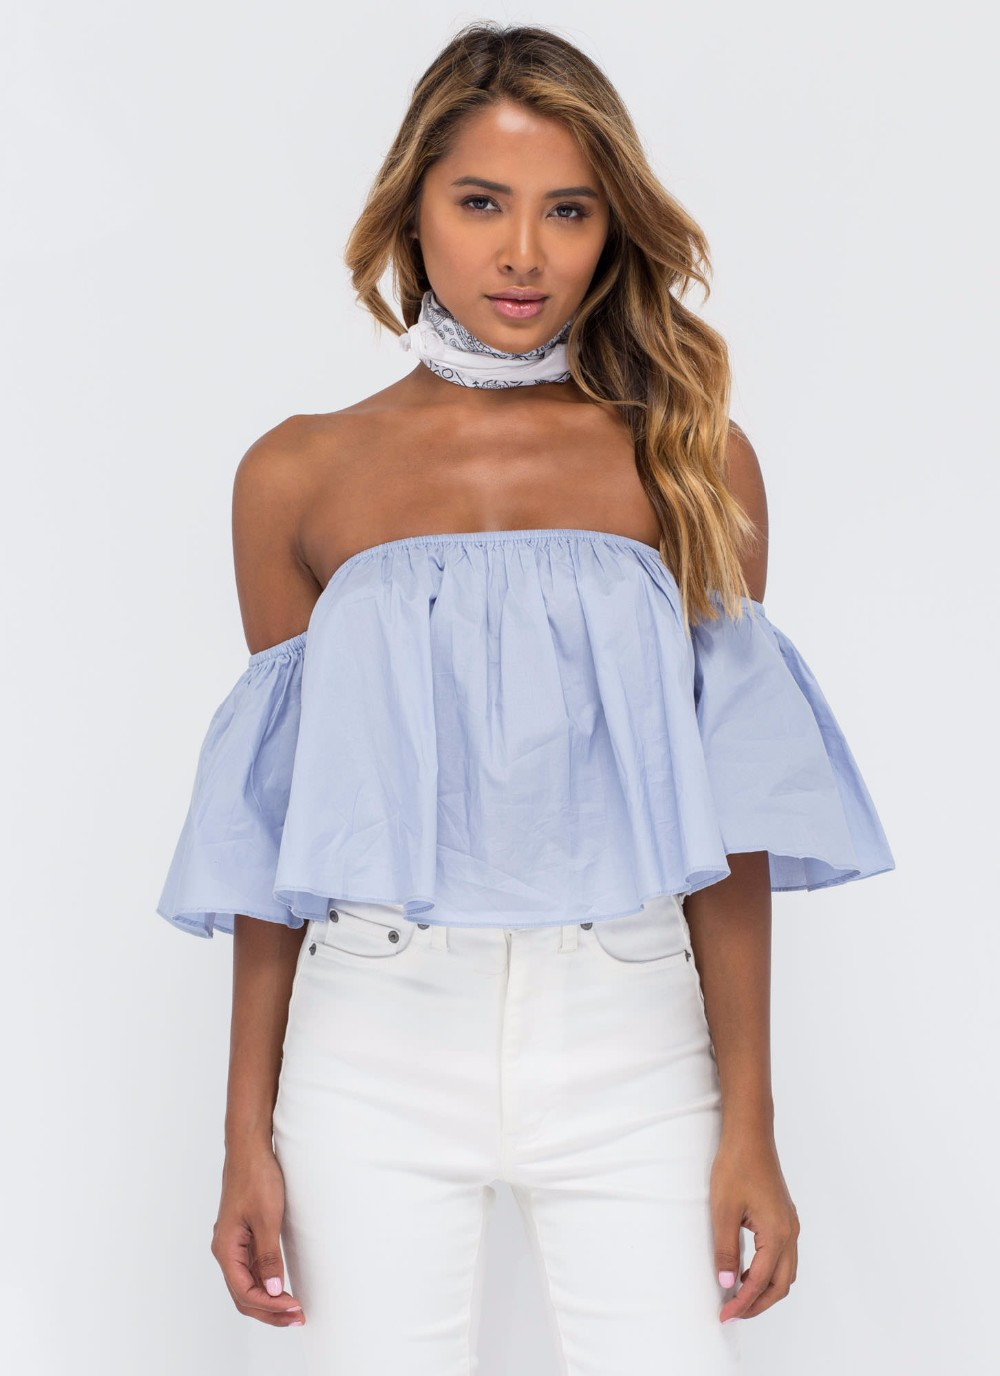 HTB1e7JYNFXXXXXLXFXXq6xXFXXXO - T shirt women butterfly sleeve off the shoulder crop top 2017